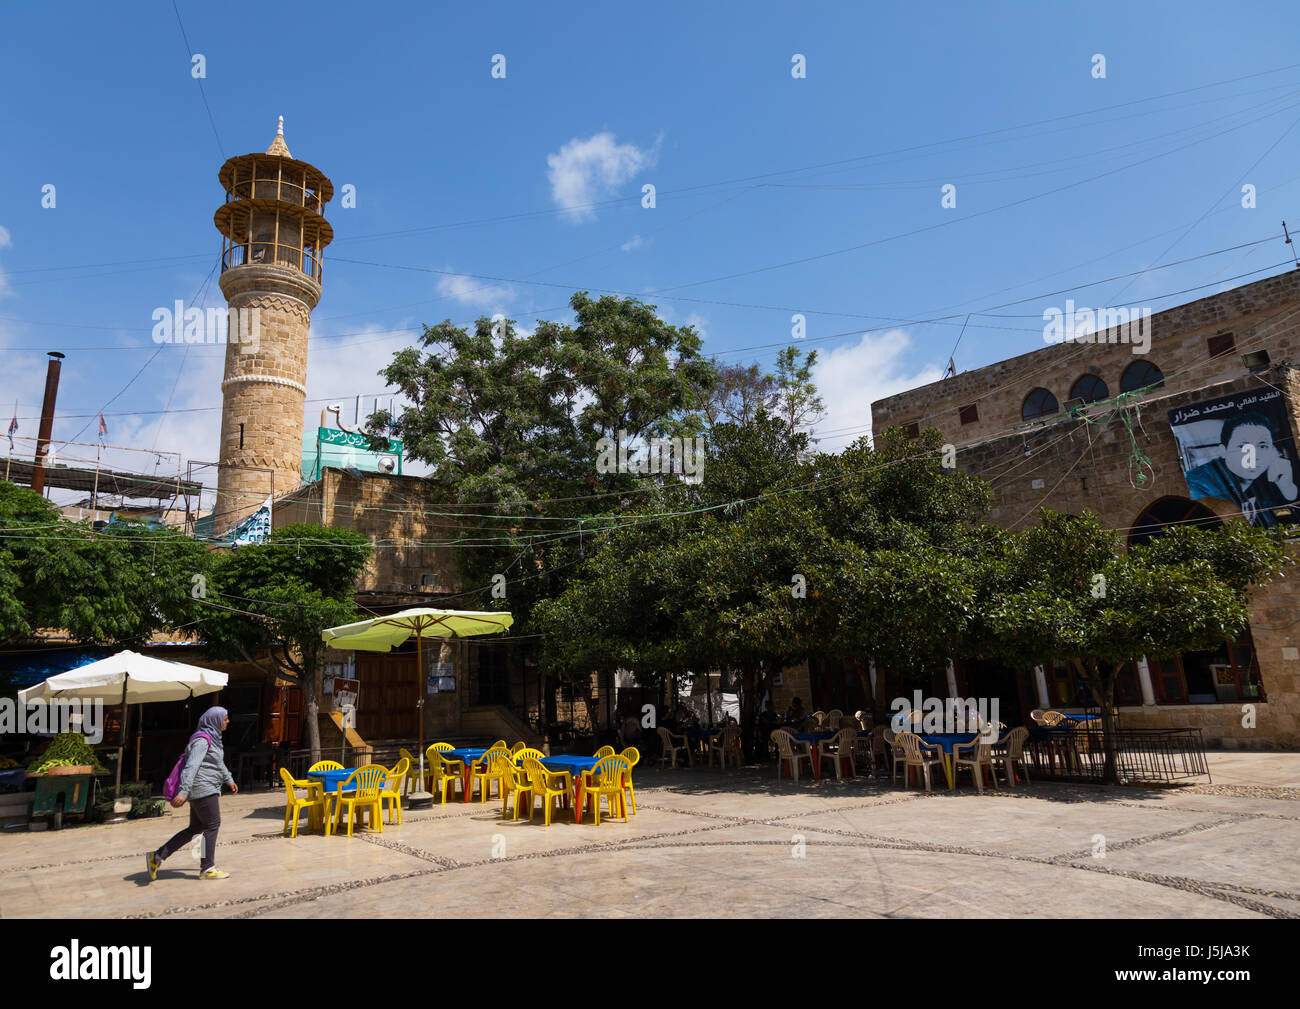 Mosque on the main square, South Governorate, Sidon, Lebanon - Stock-Bilder